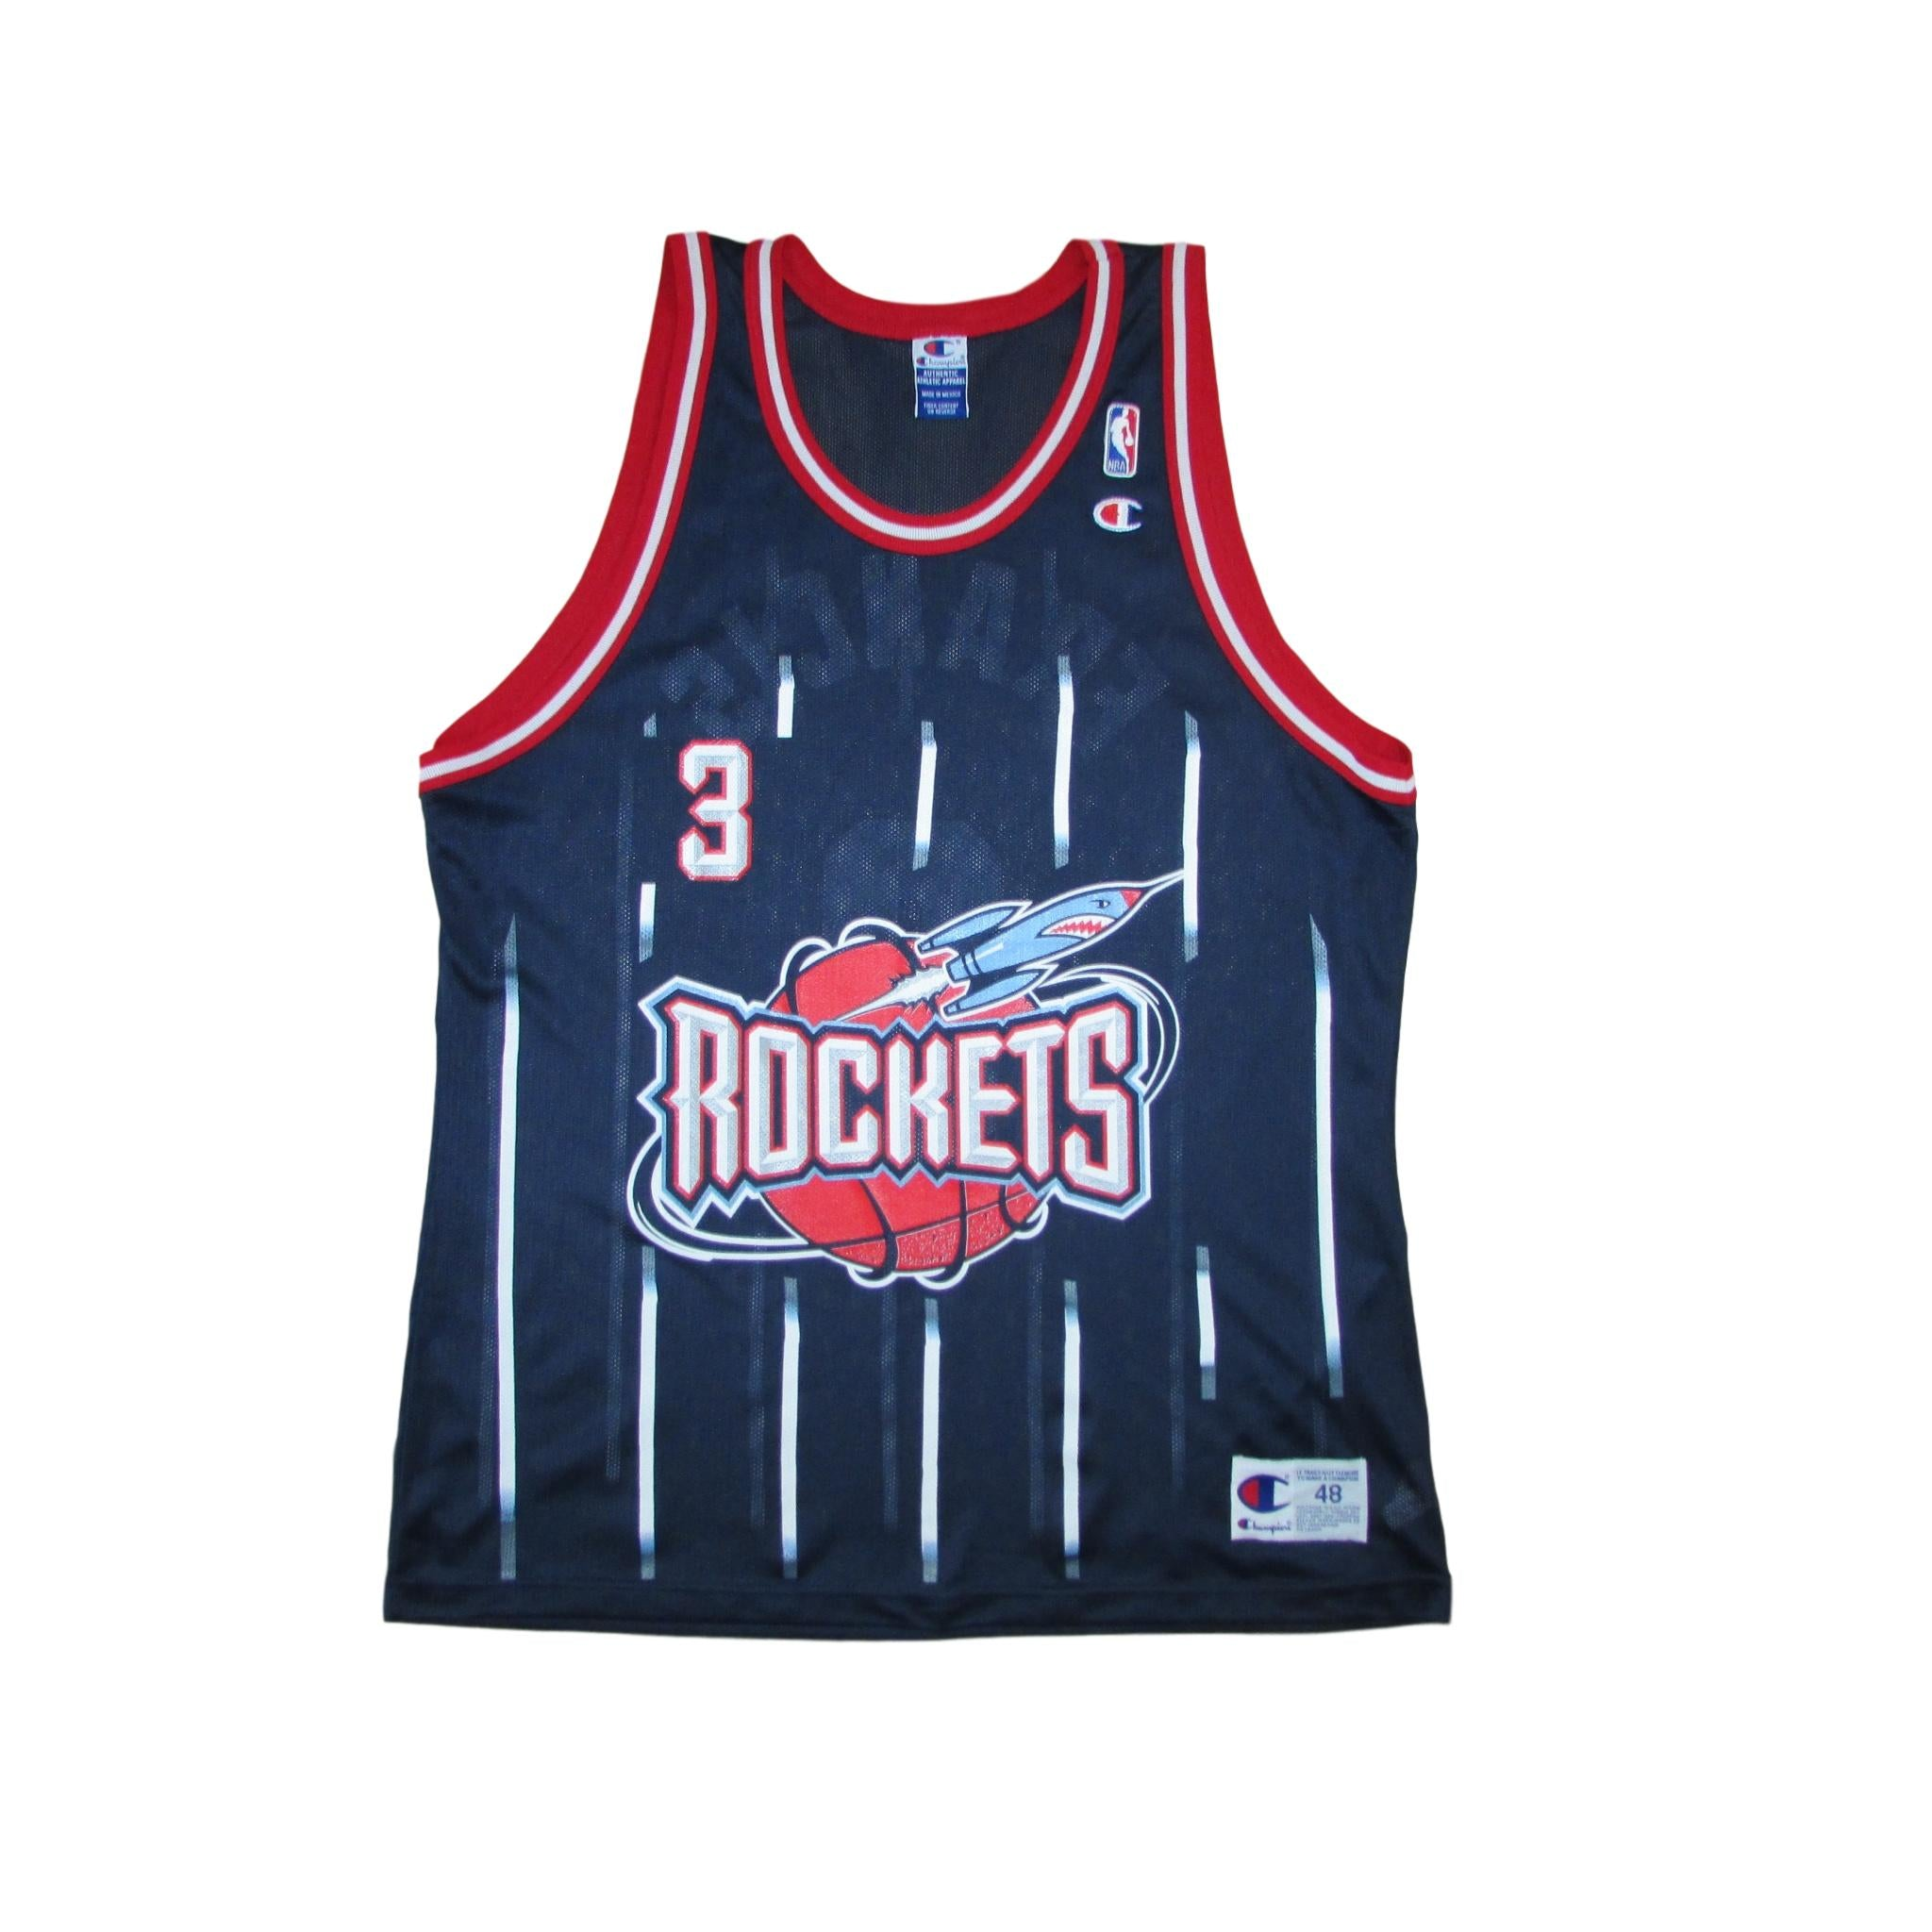 de8d4427c32 Houston Rockets Steve Francis 1999 Basketball Jersey Champion Sz 48 ...